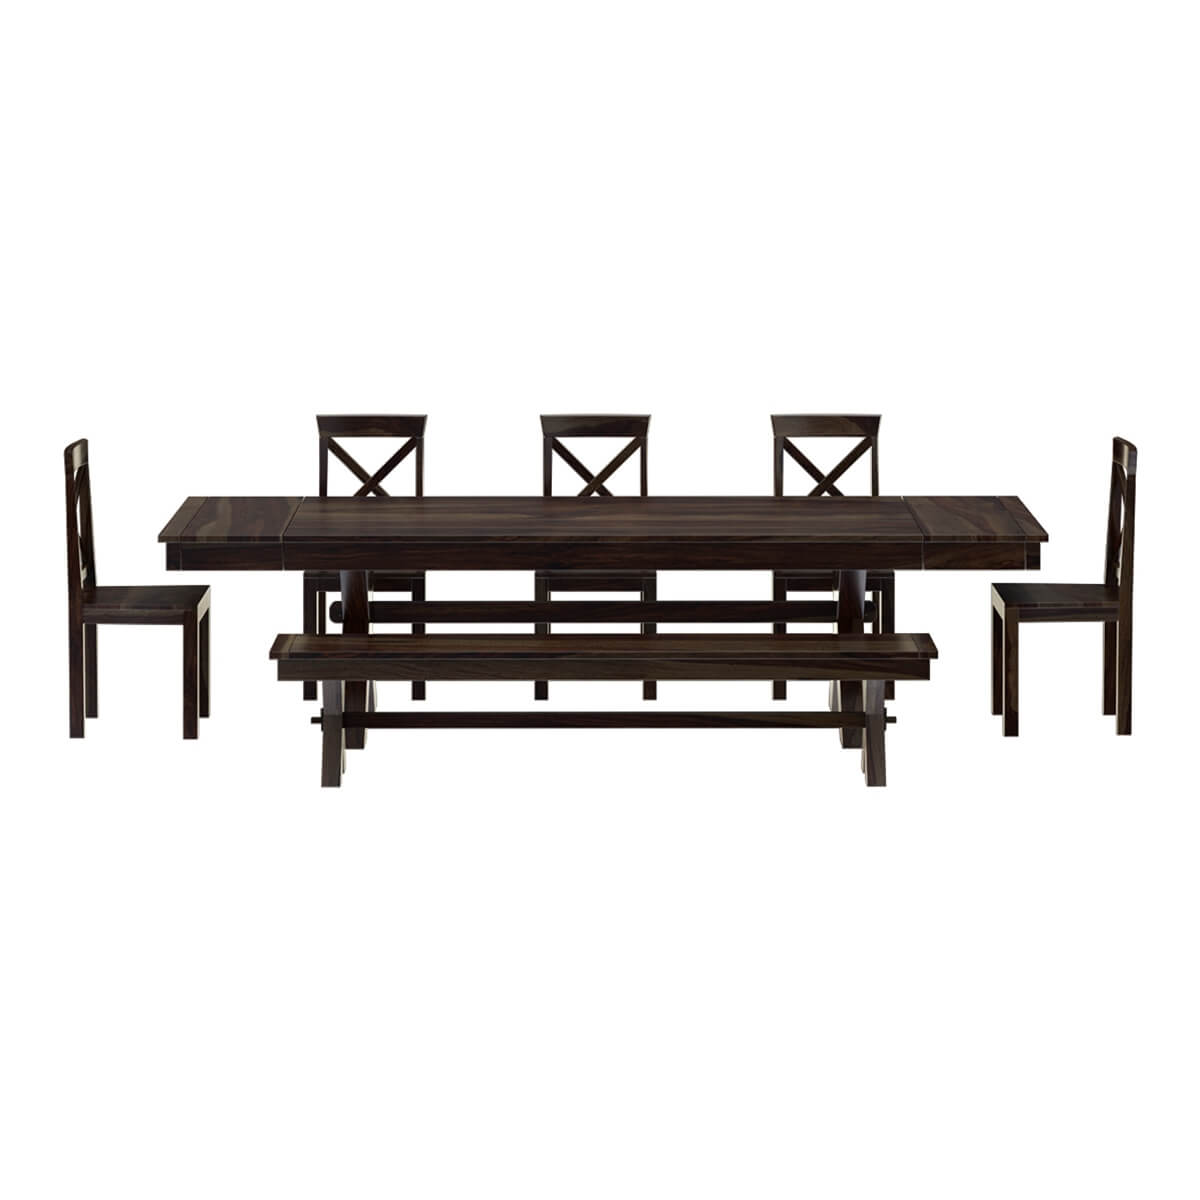 Westside indoor picnic style dining table bench set with extensions Breakfast table with bench